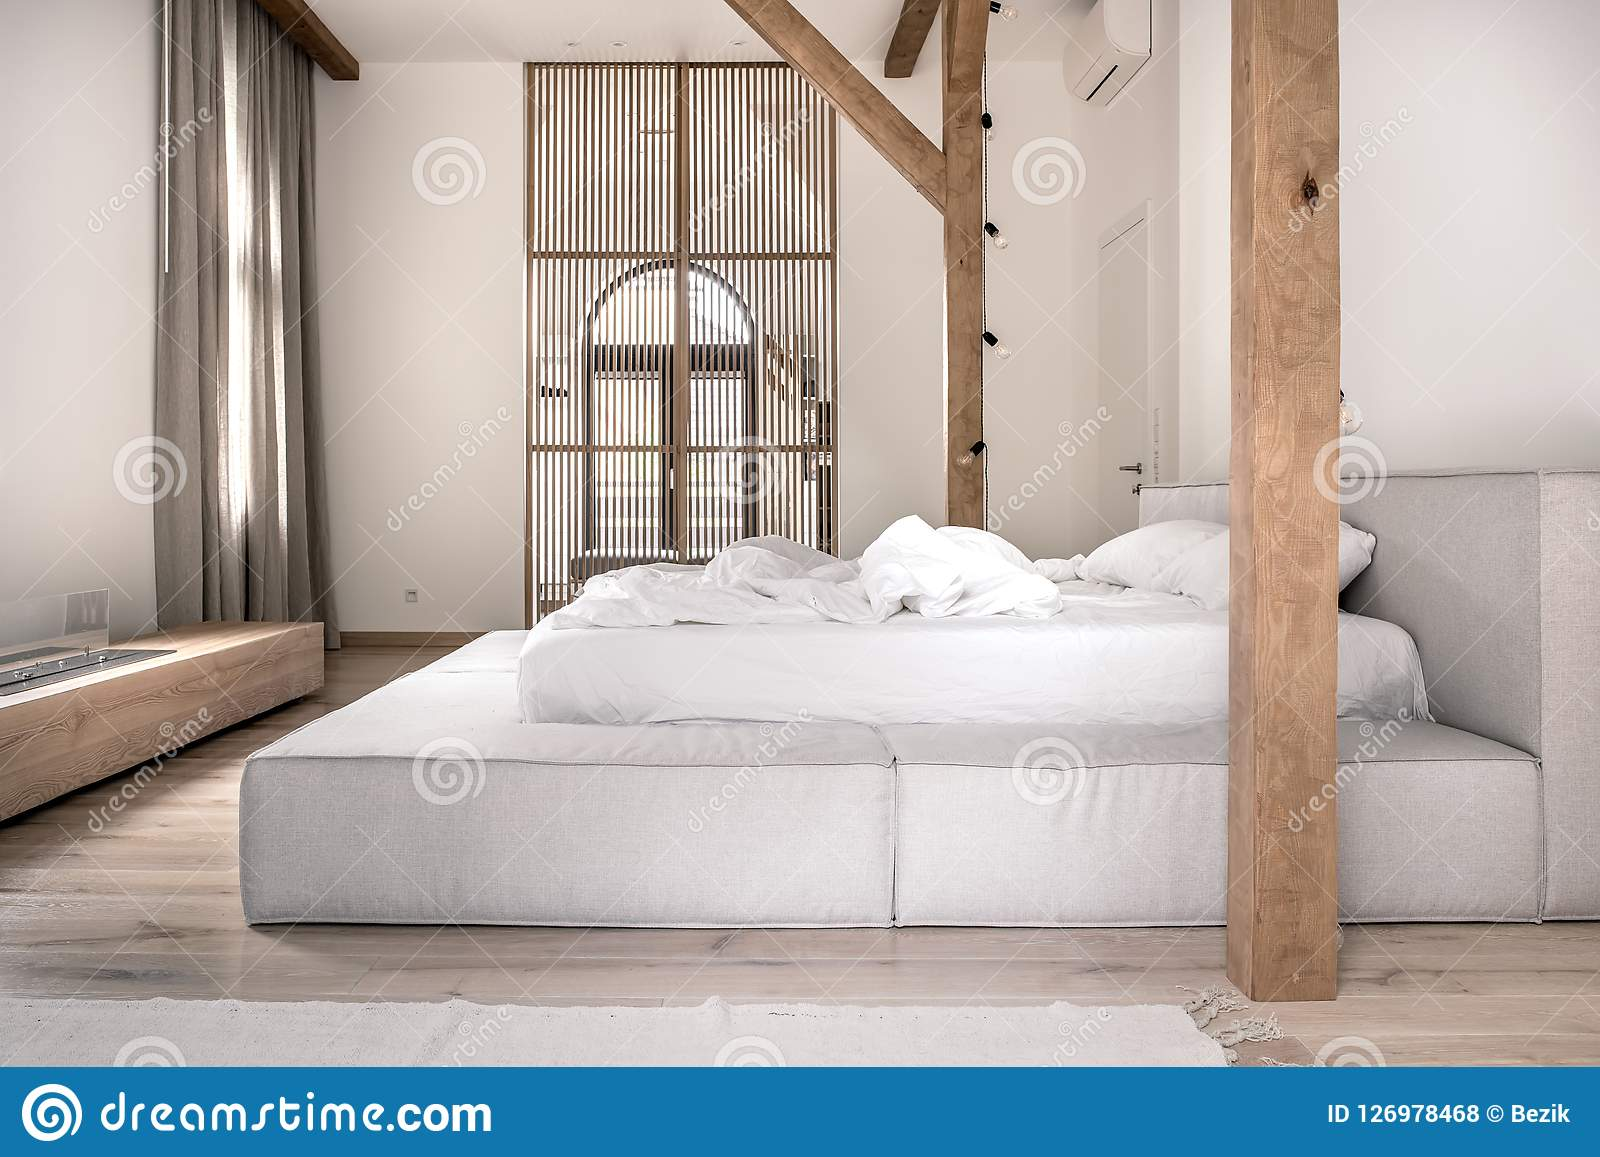 Stylish Bedroom In Modern Style With Wooden Beams Stock Photo Image Of Mansion Door 126978468